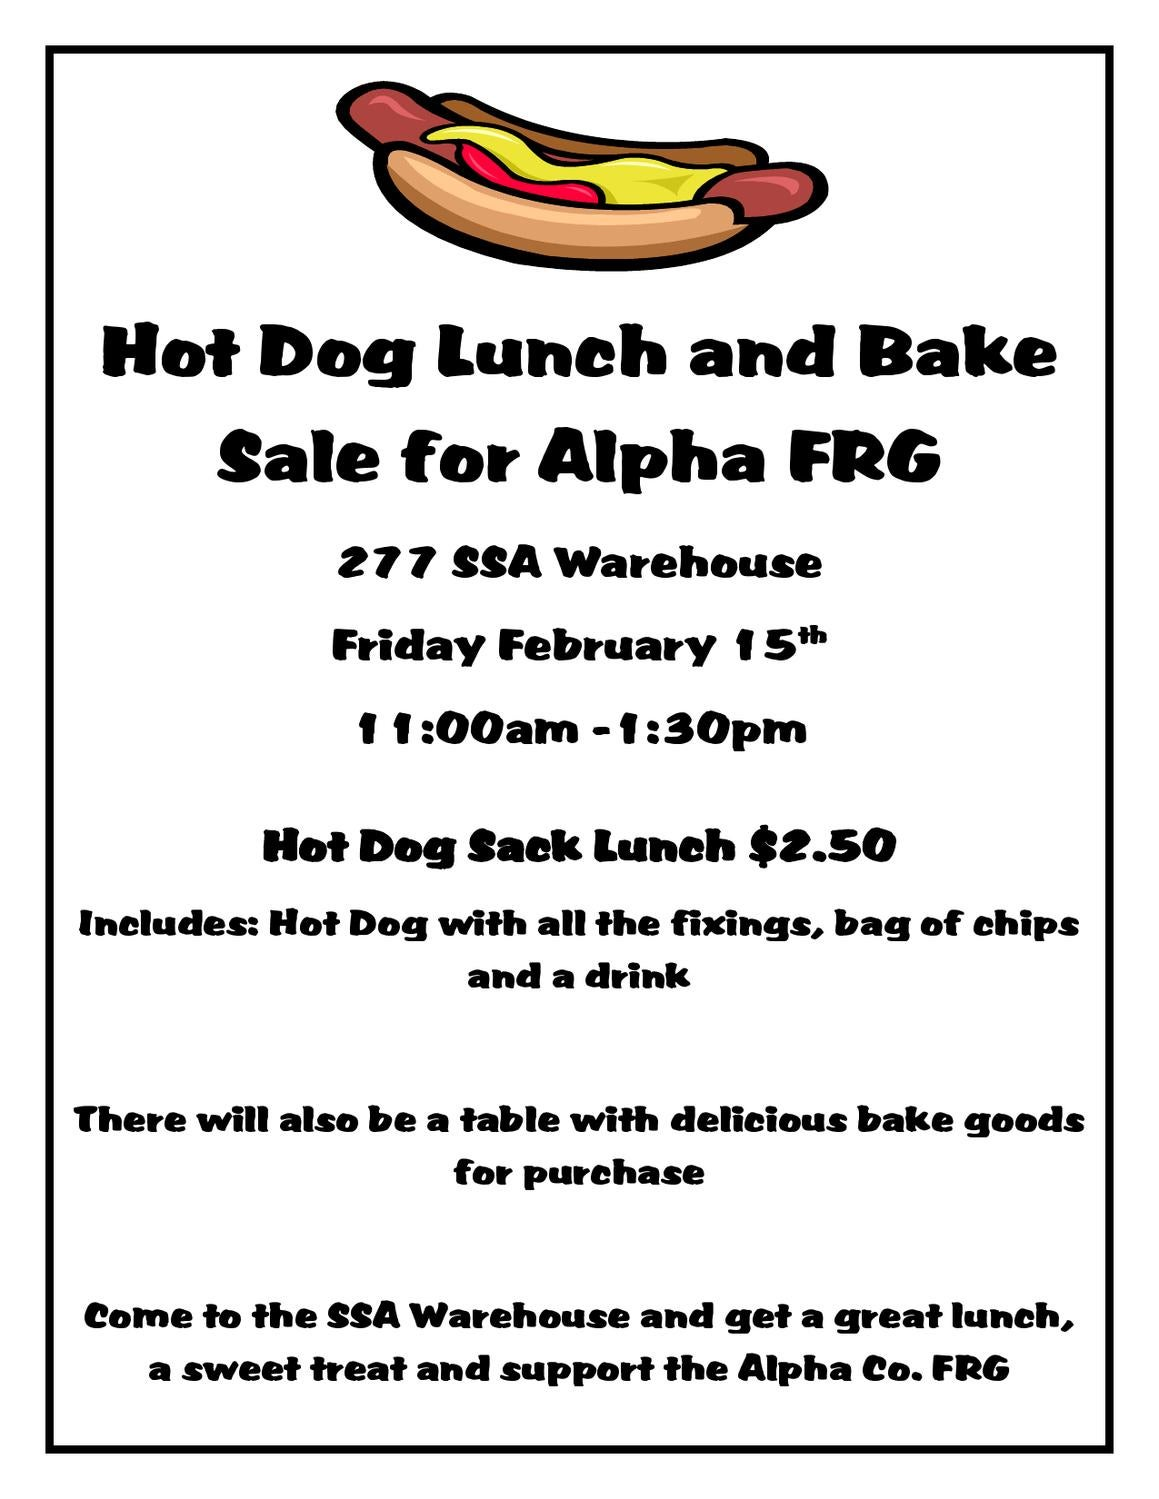 puppy for sale flyer templates - hot dog sale flyer bing images